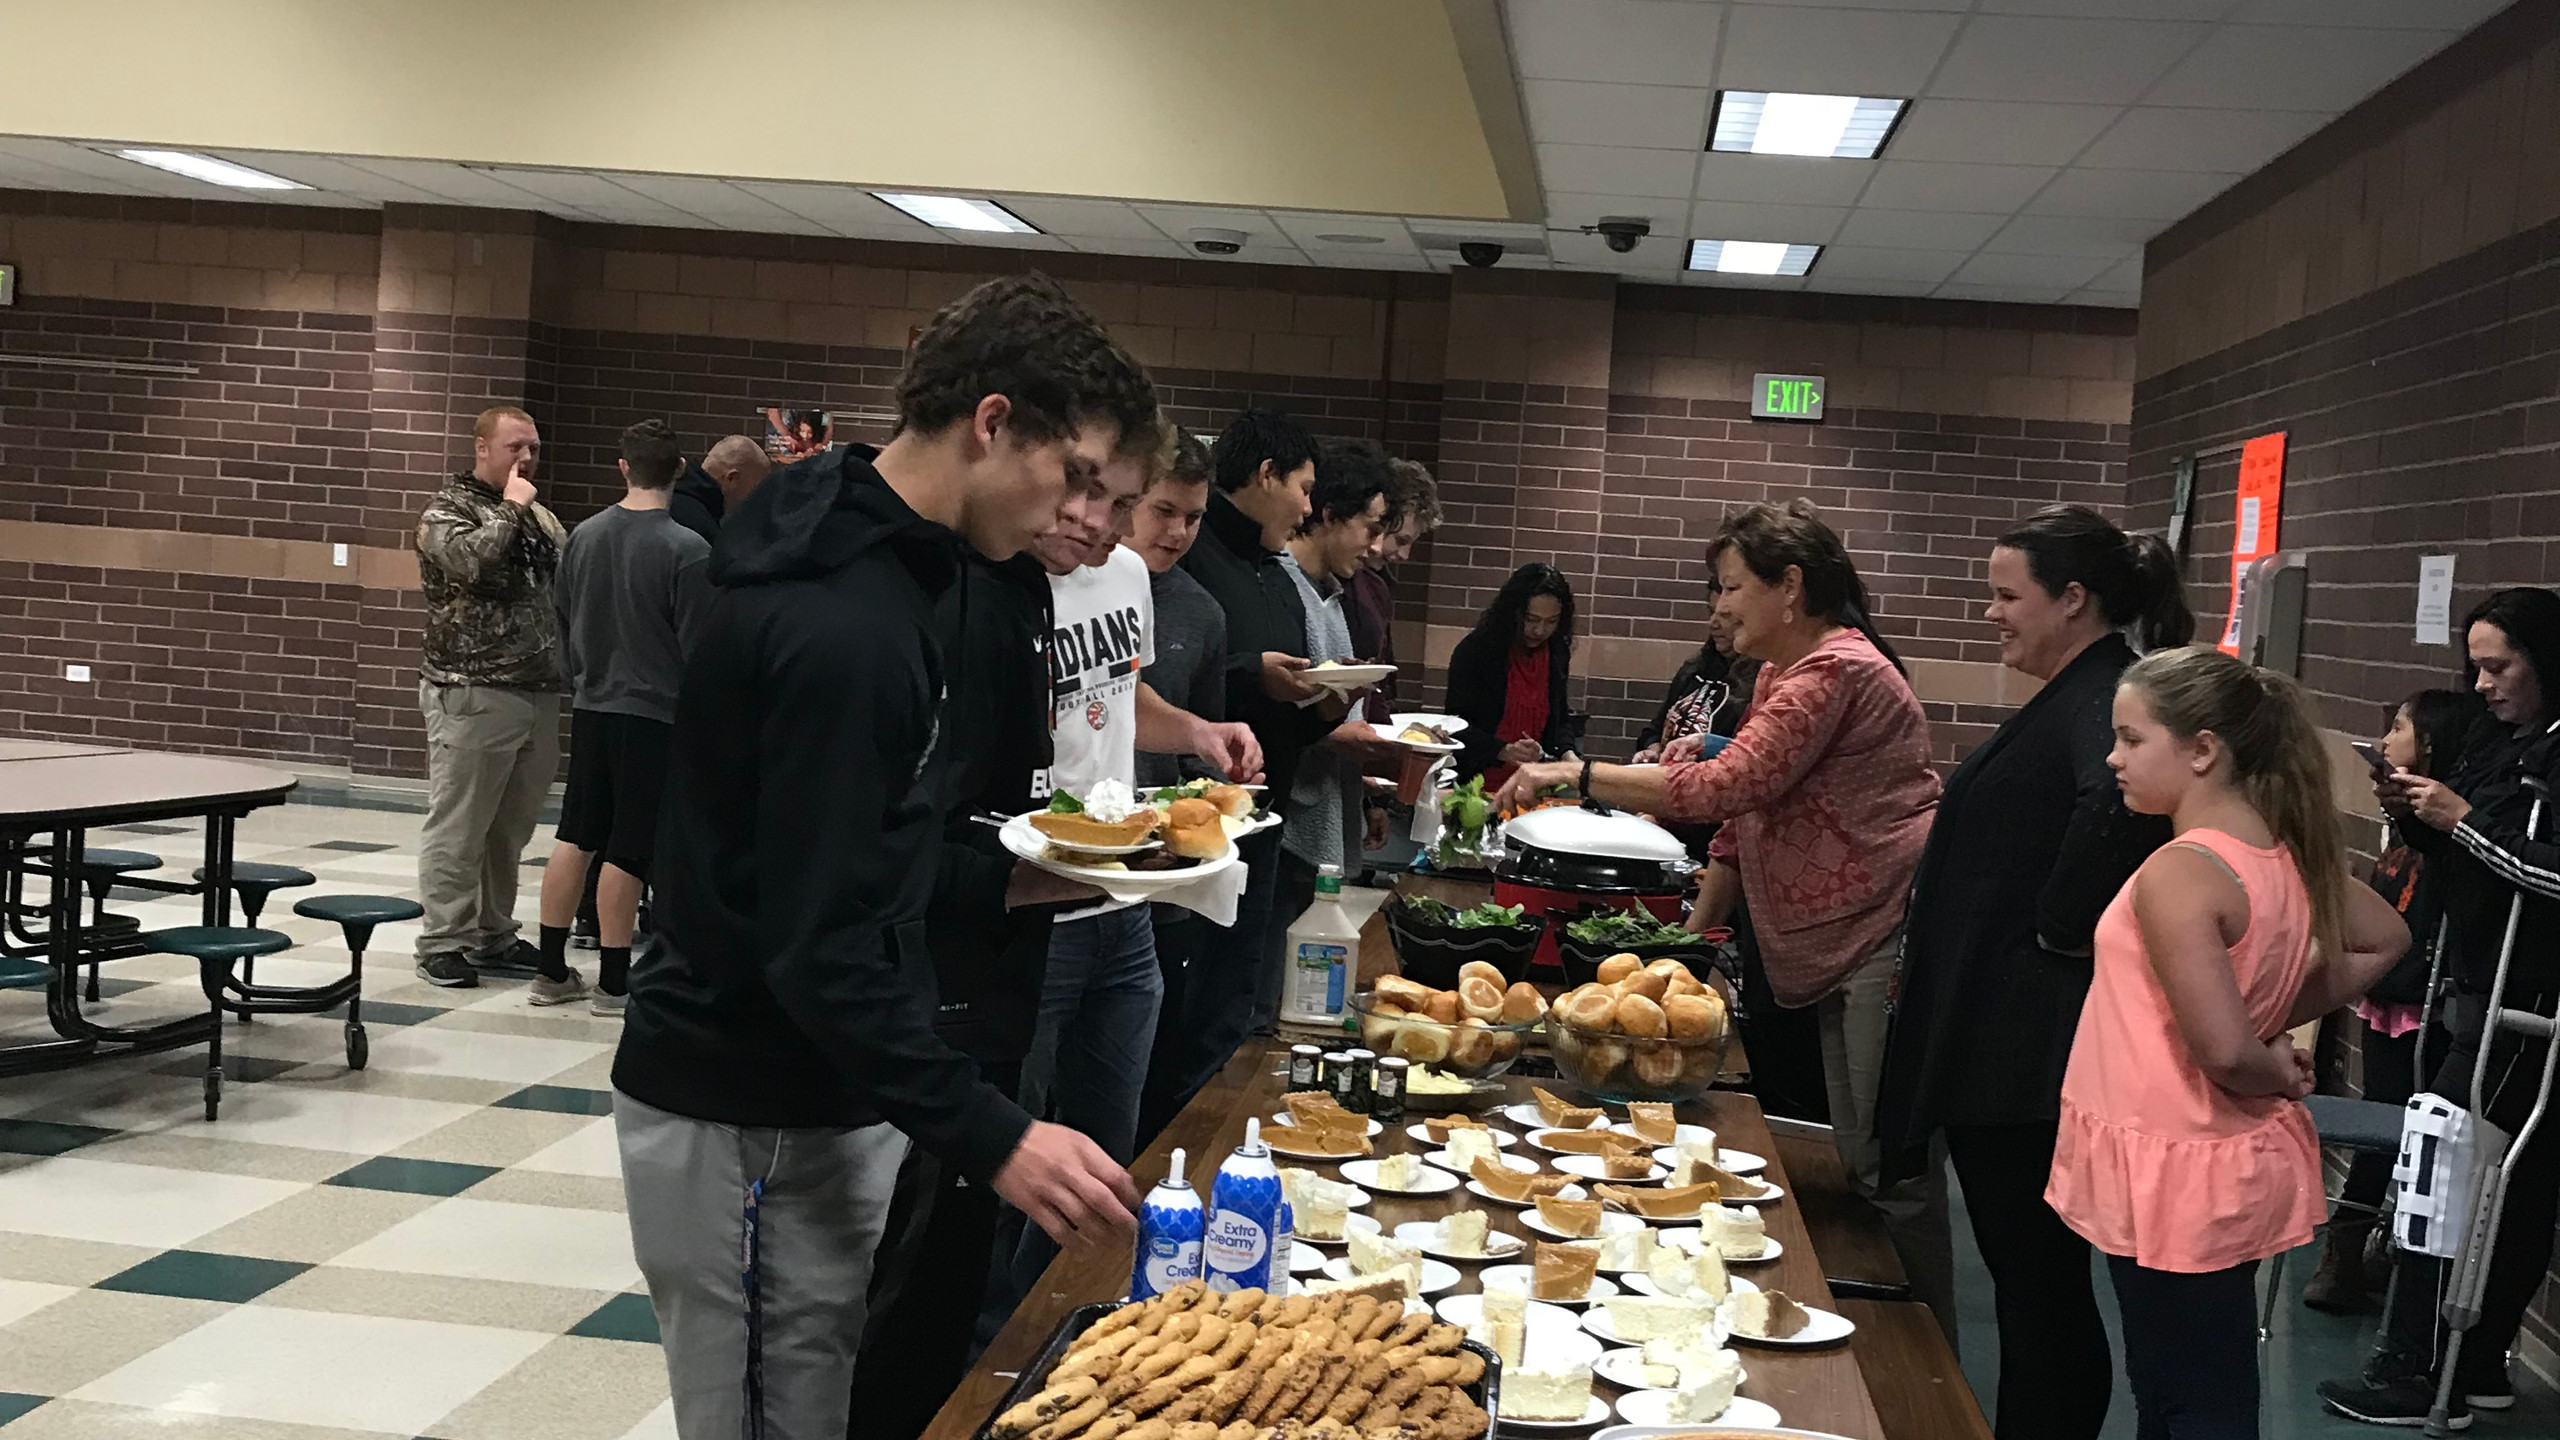 Thank you to all of those who prepared such a lovely meal for the Football  Team Senior Night gathering.